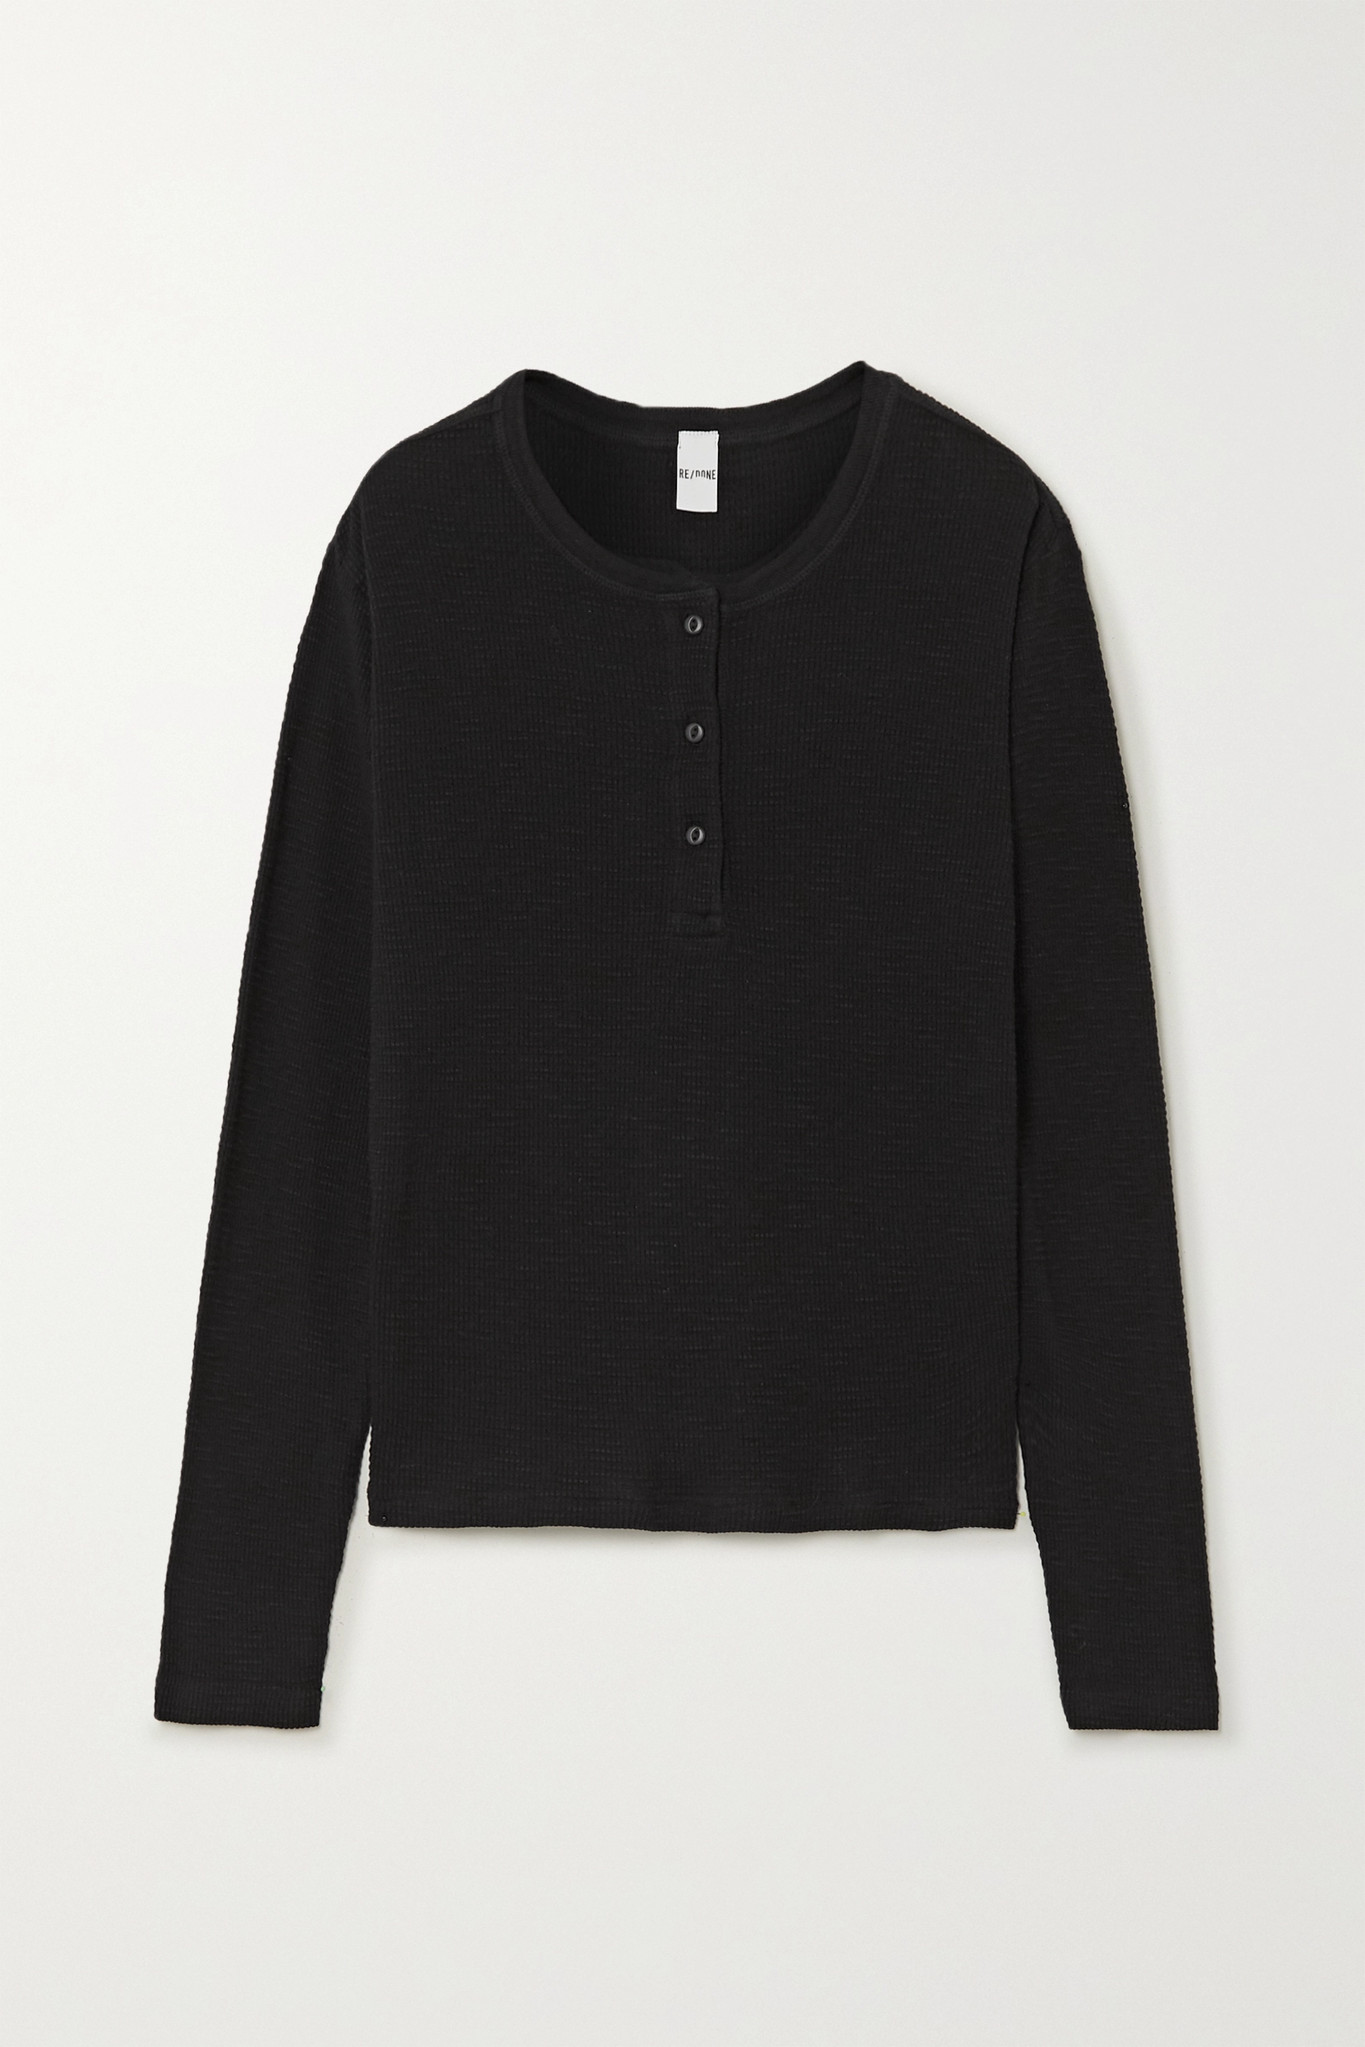 RE/DONE - Waffle-knit Cotton-jersey Top - Black - x small